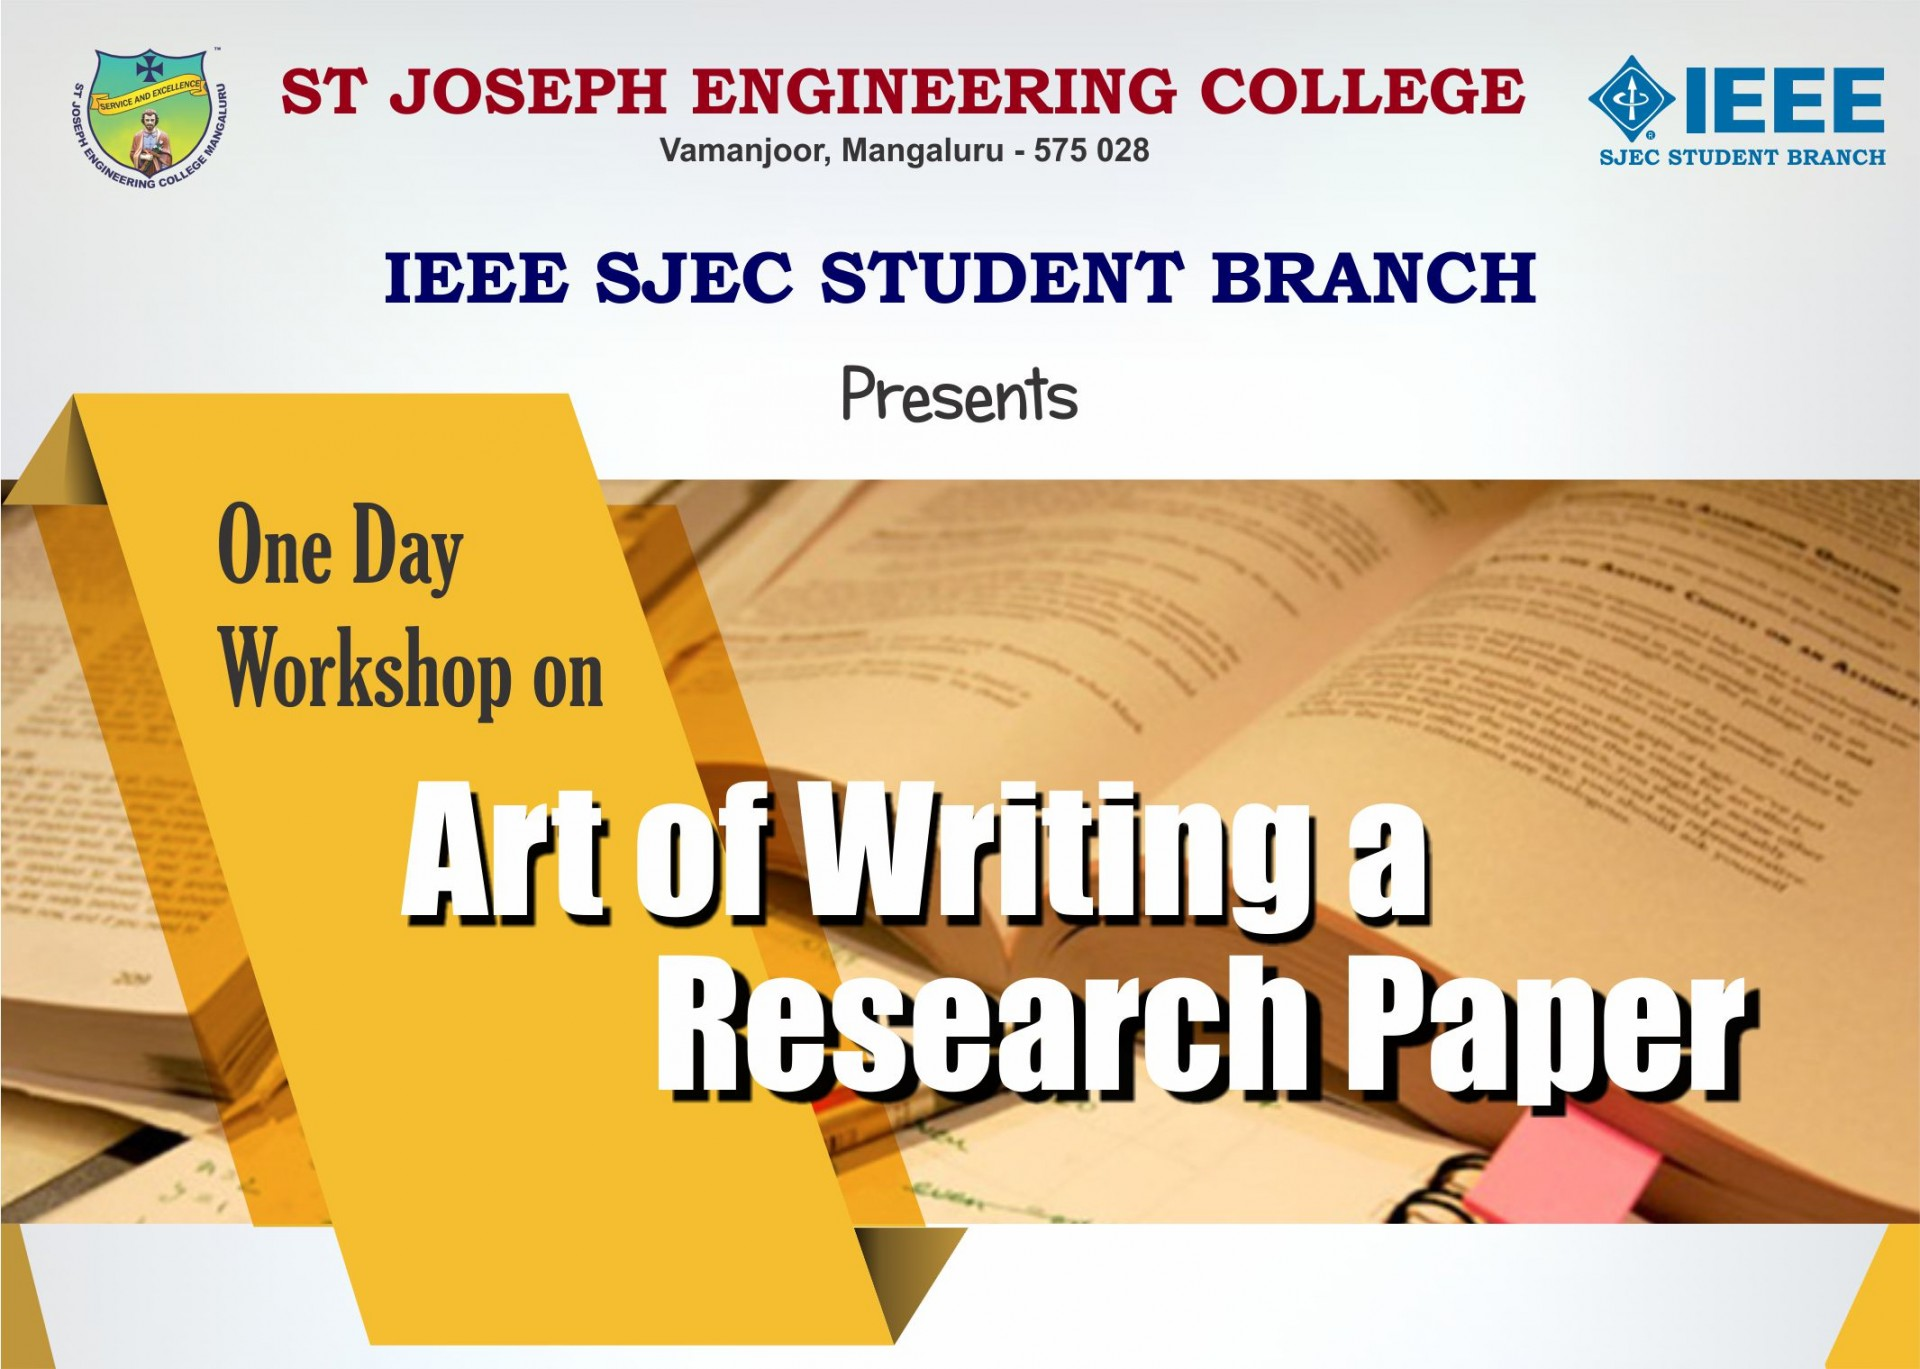 011 Research Paper Writing Workshop Unforgettable Service Online Software Free Download 1920